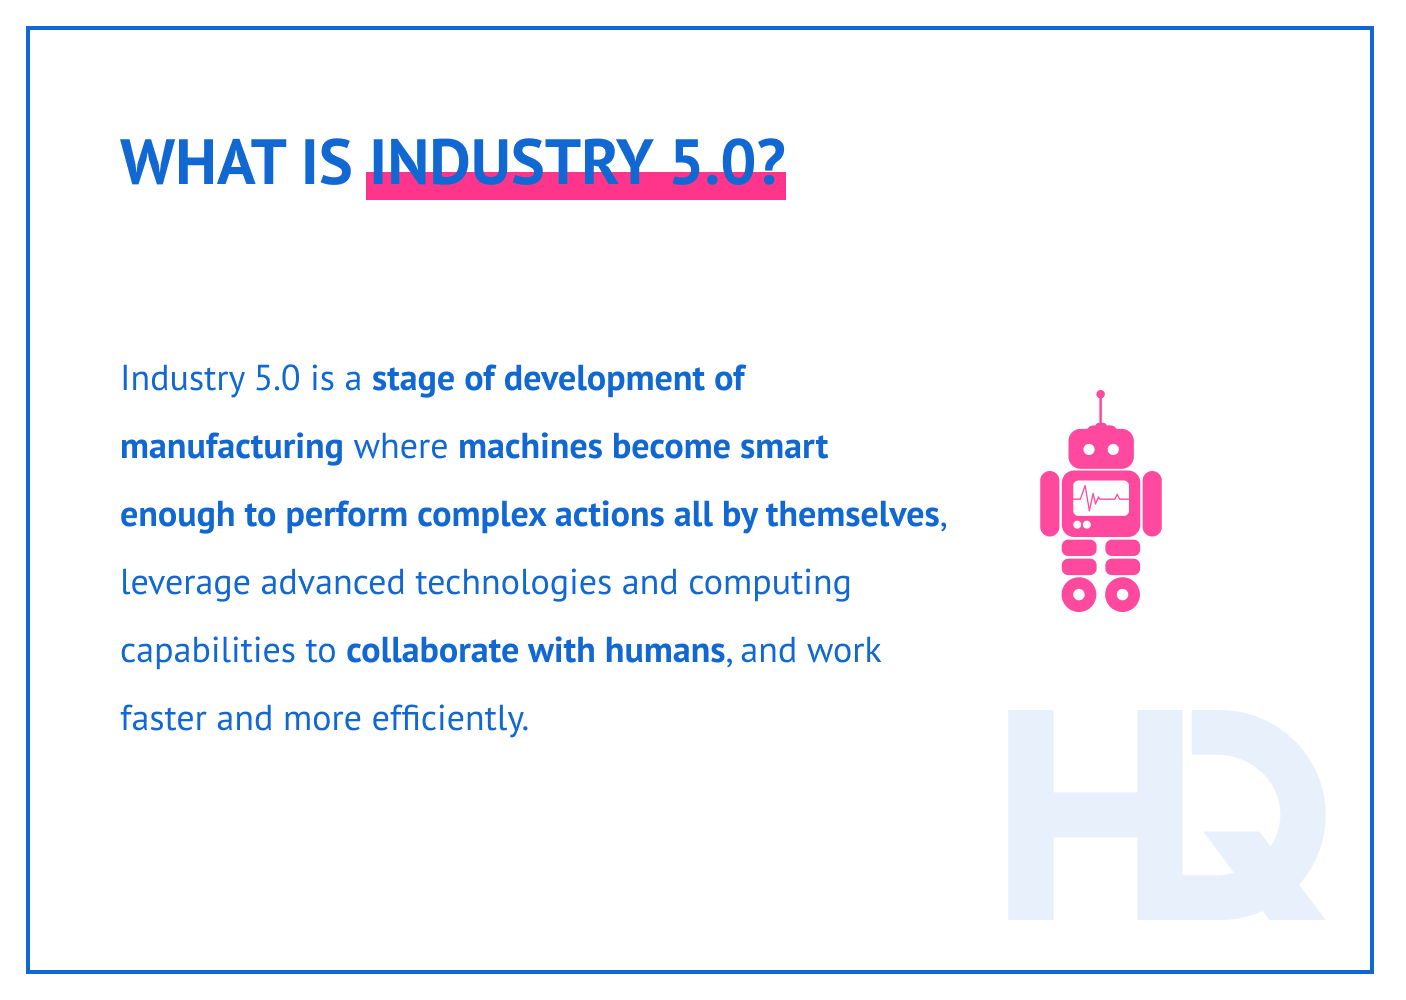 What is Industry 5.0?